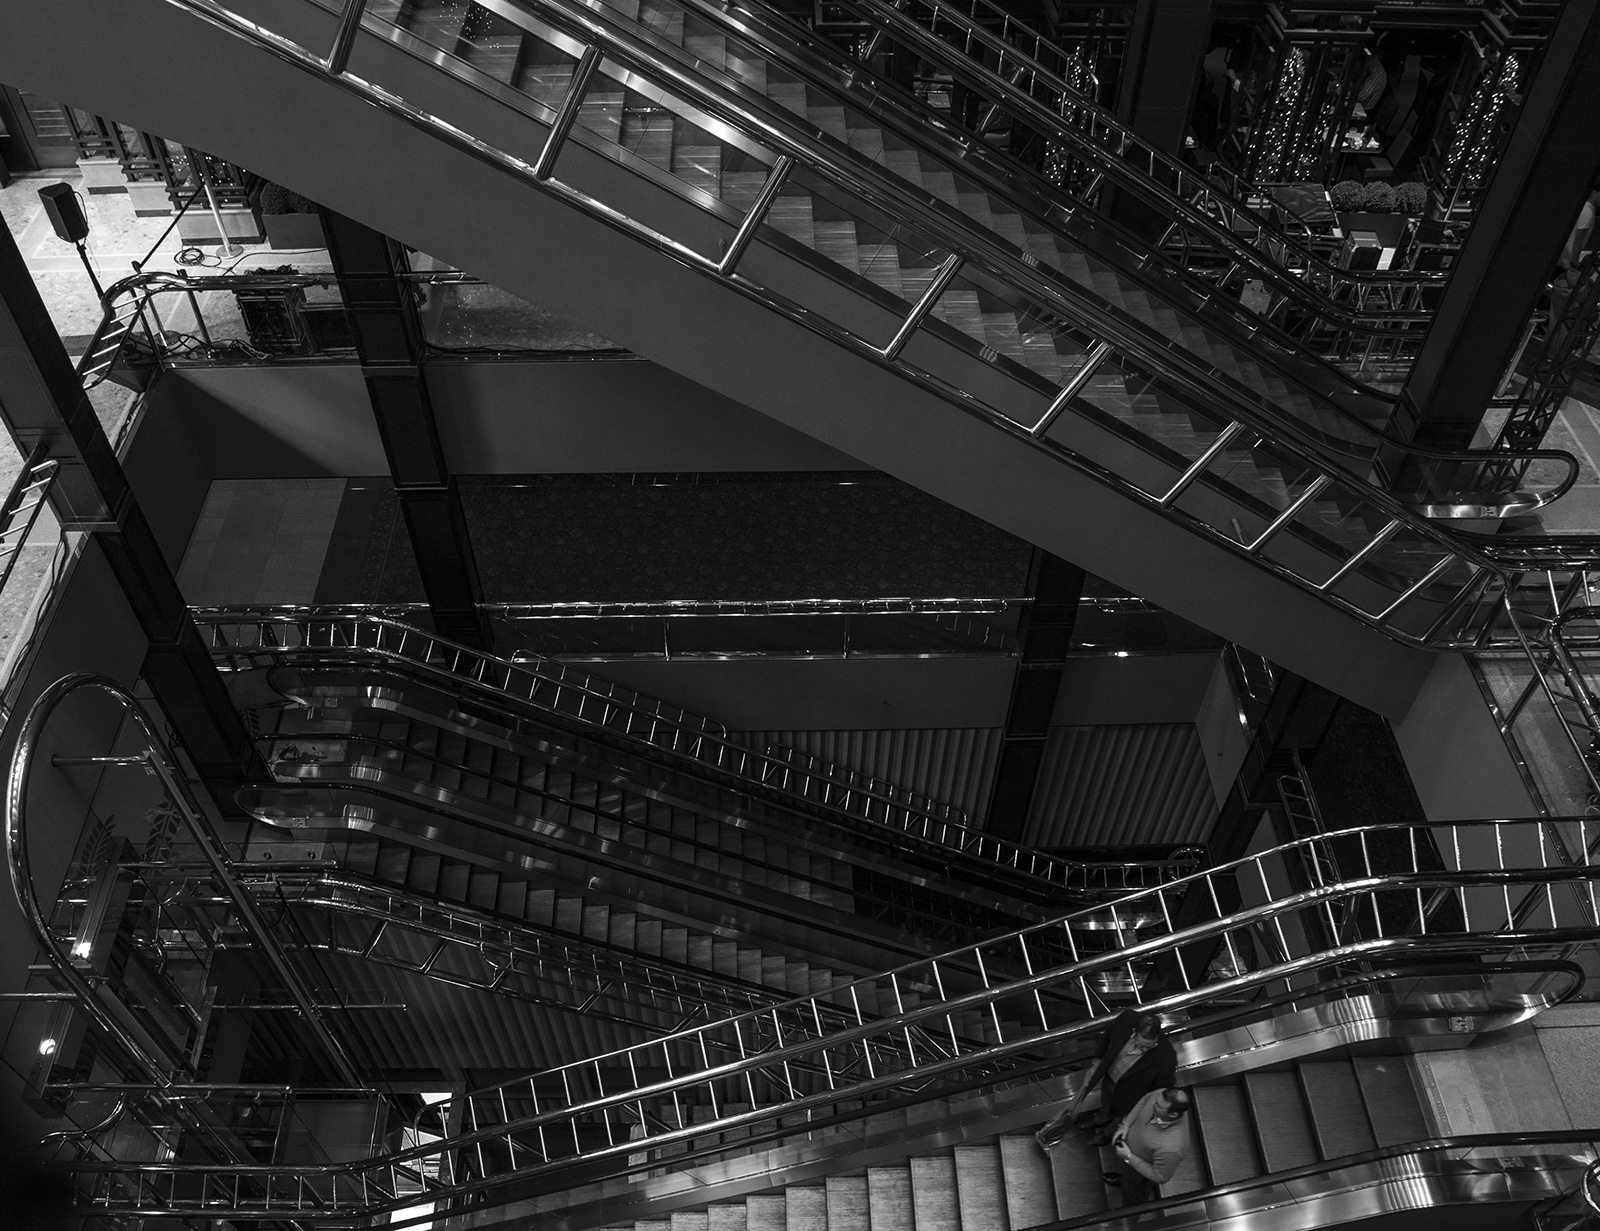 """Photo 20131223. """"Going down or up the escalators at the Sheraton hotel in Toronto"""" #2."""